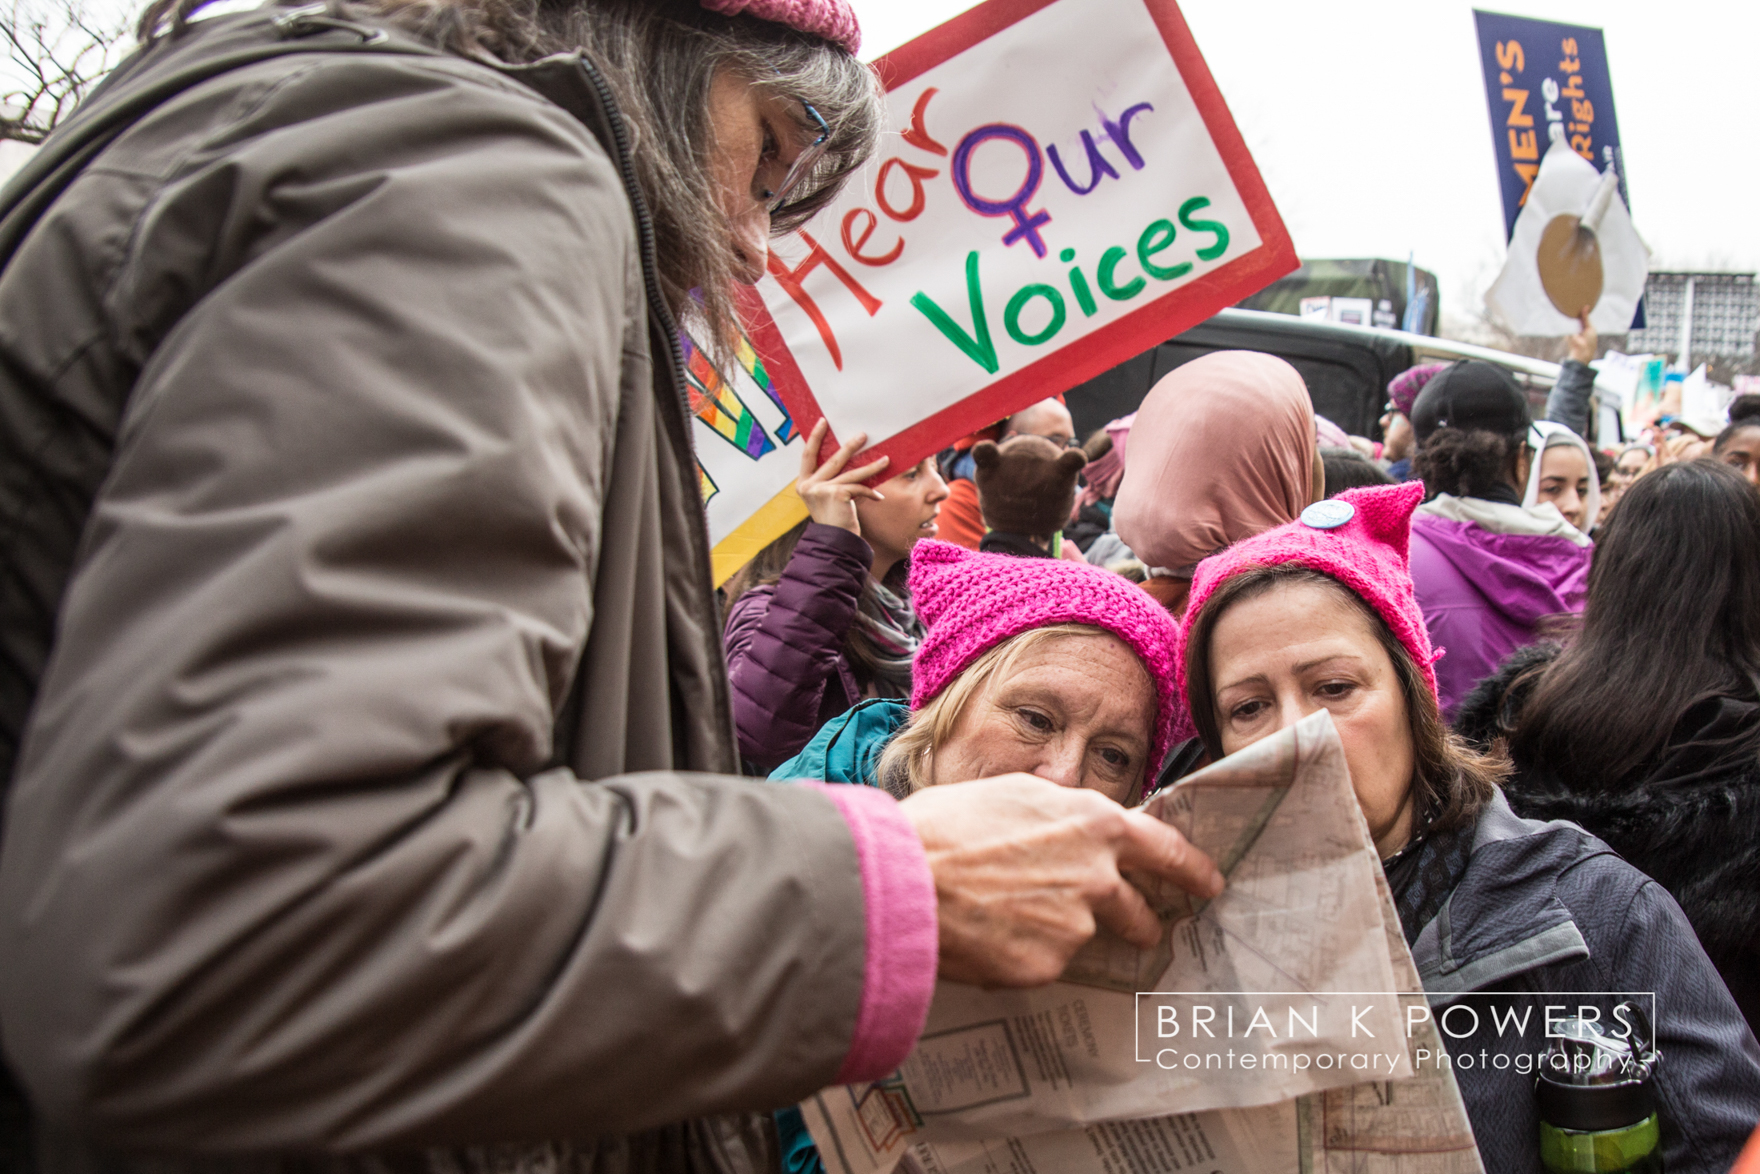 BrianK Powers Photography_Womens March on washington DC_038.jpg